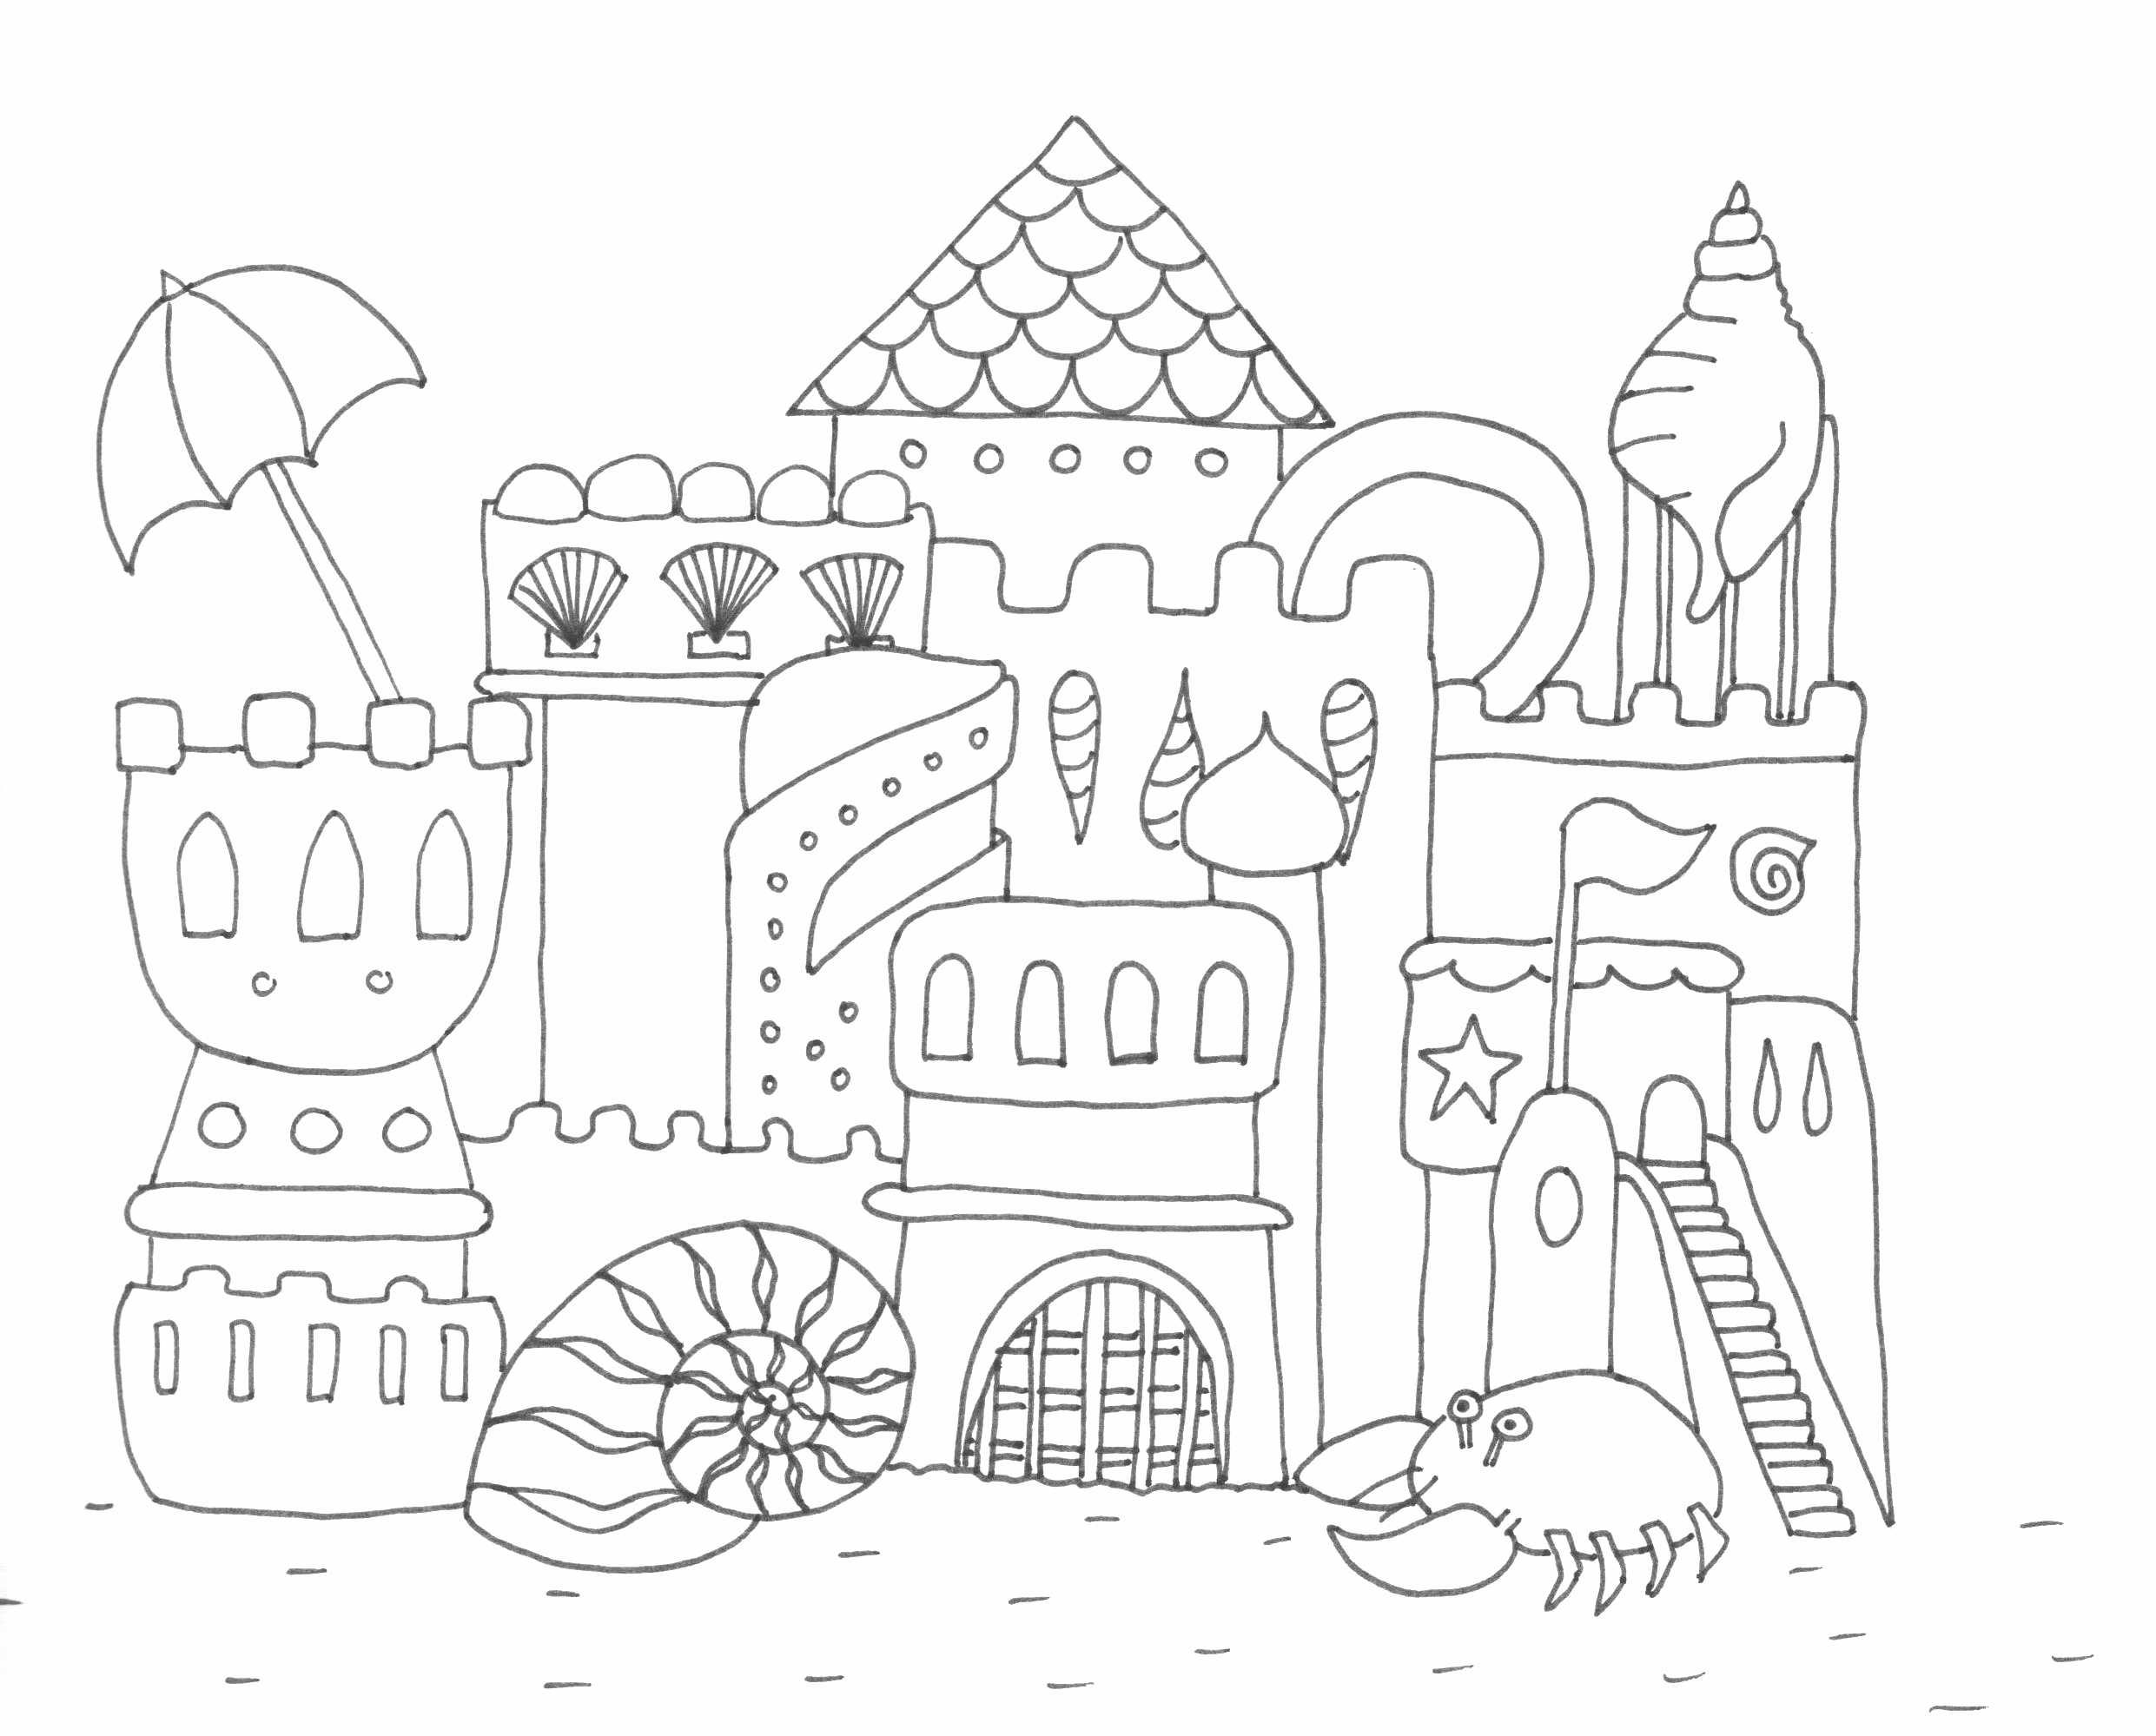 Homokvar Rajz Drawing Sandcastle Coloring Page Szinezo Castle Coloring Page Coloring Pages Princess Coloring Pages